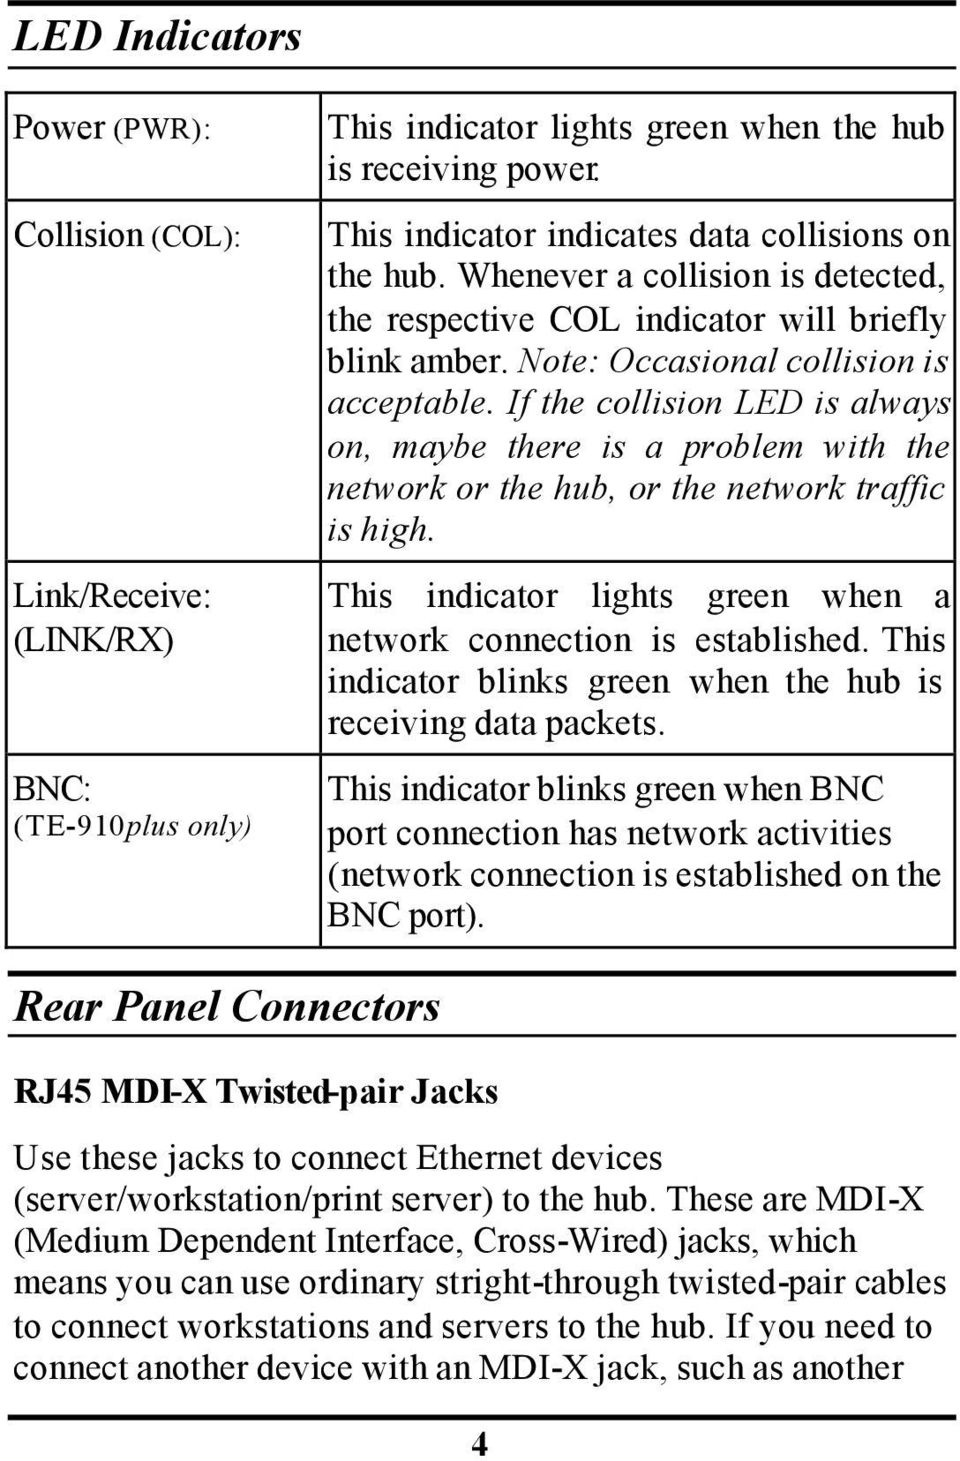 If the collision LED is always on, maybe there is a problem with the network or the hub, or the network traffic is high. This indicator lights green when a network connection is established.